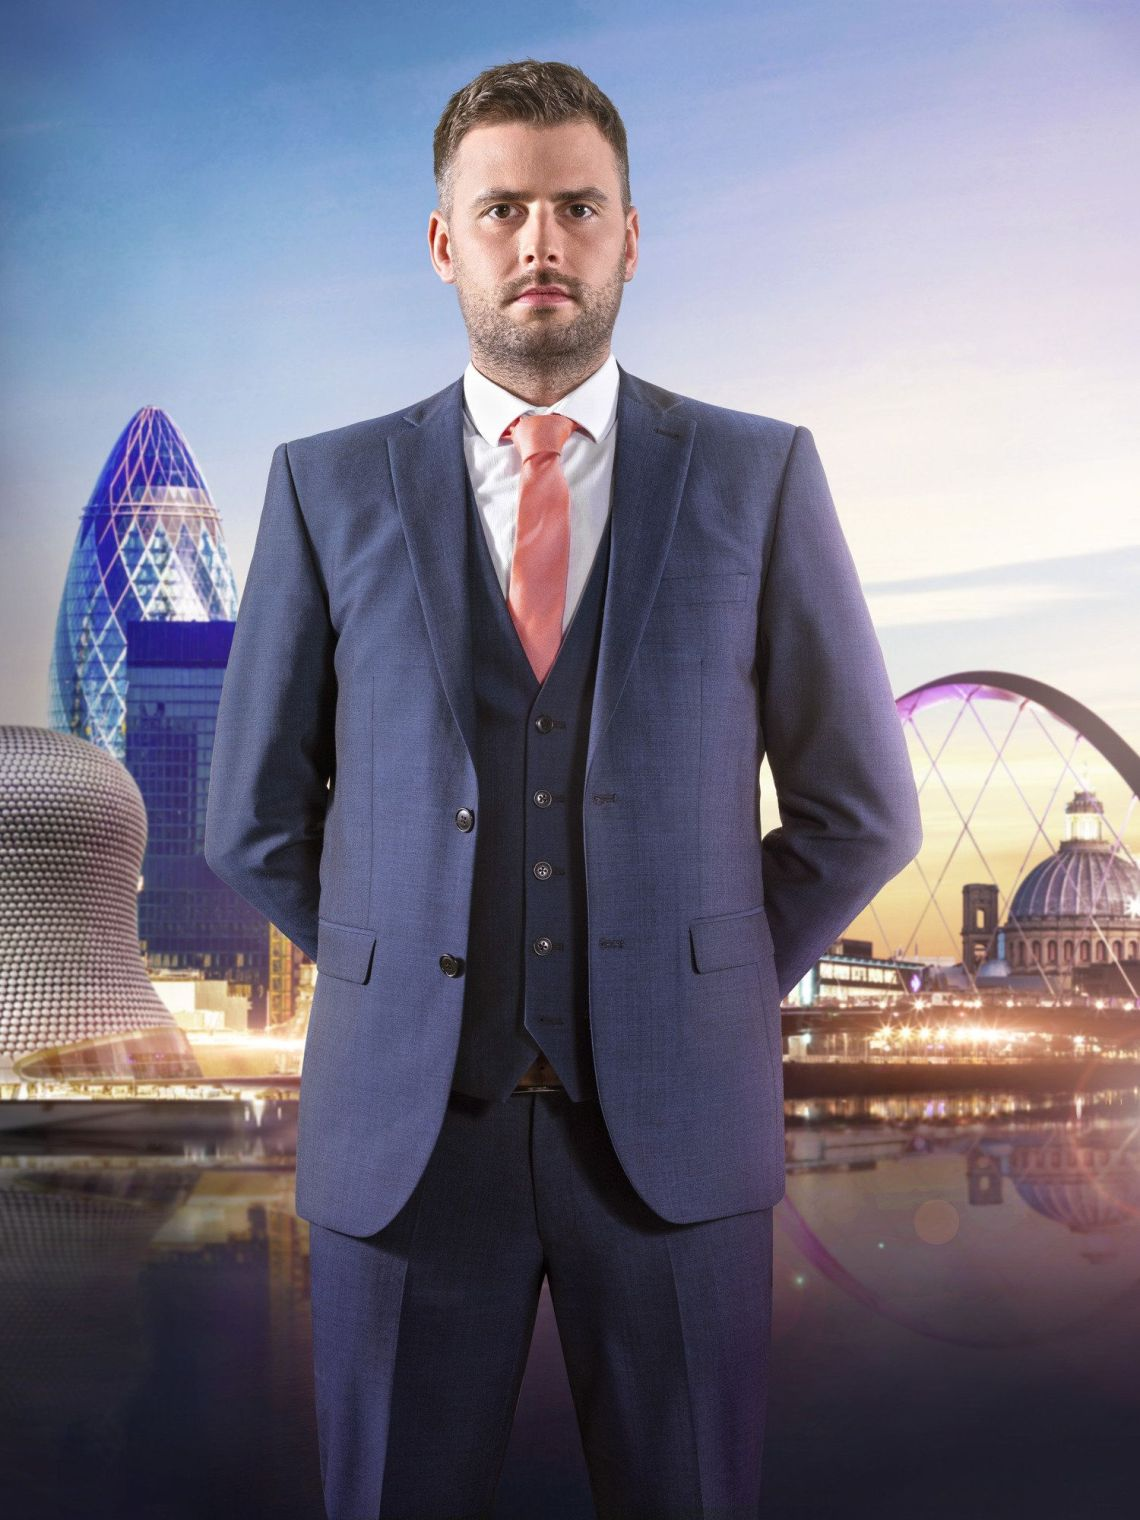 Rick Monk made some sexist comments during The Apprentice's first episode